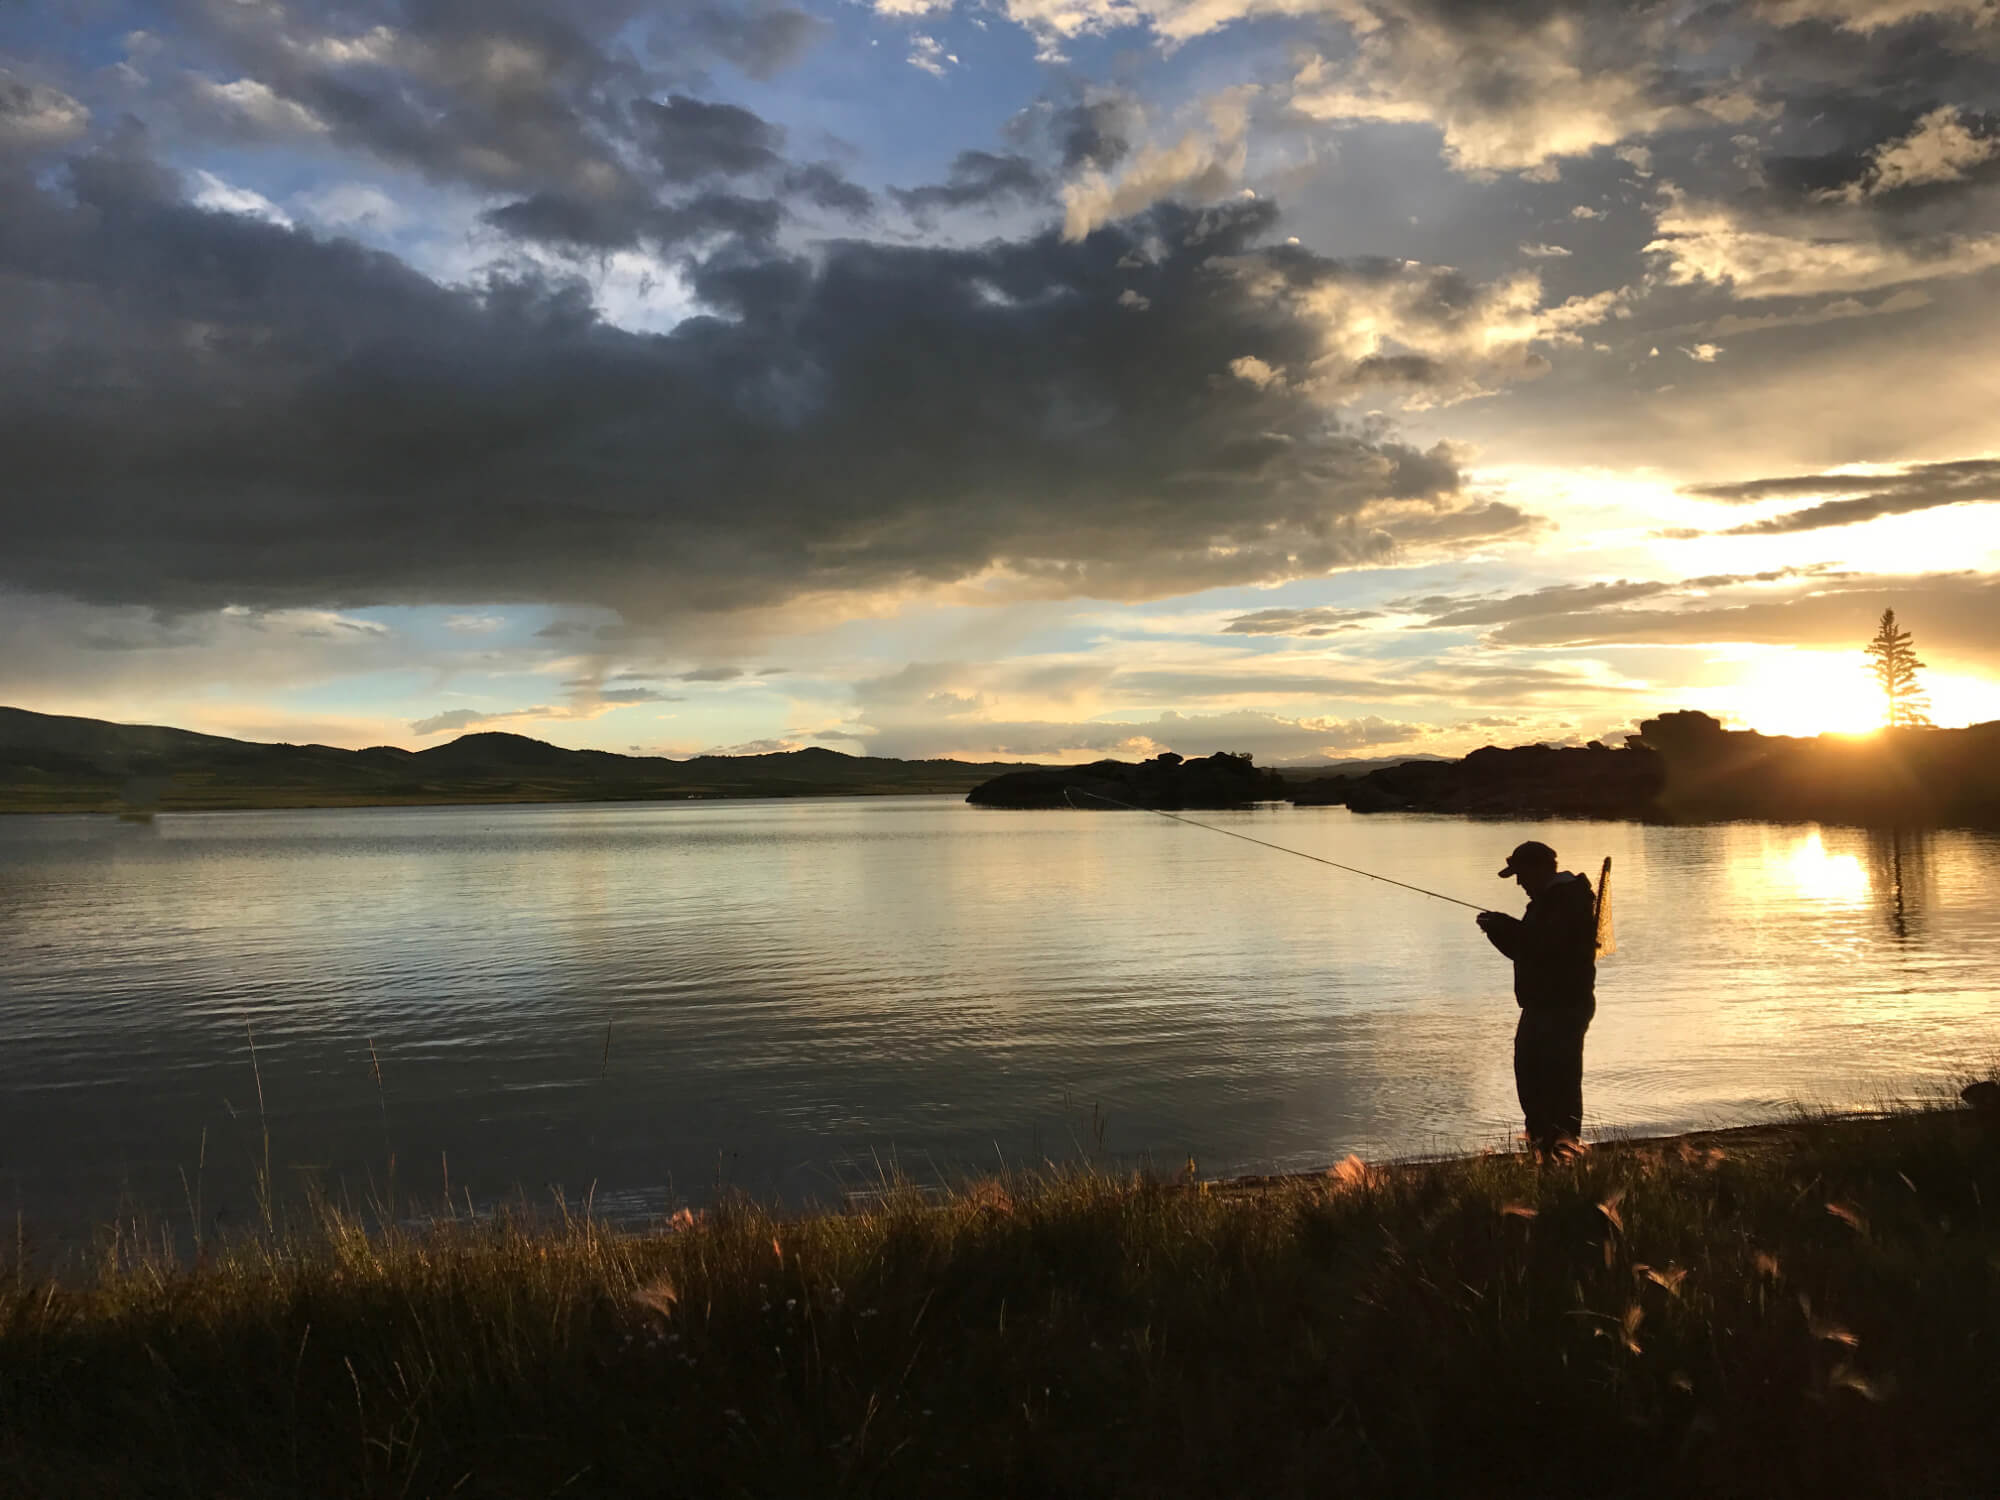 A fisherman stands on the banks of a Colorado reservoir at dawn.